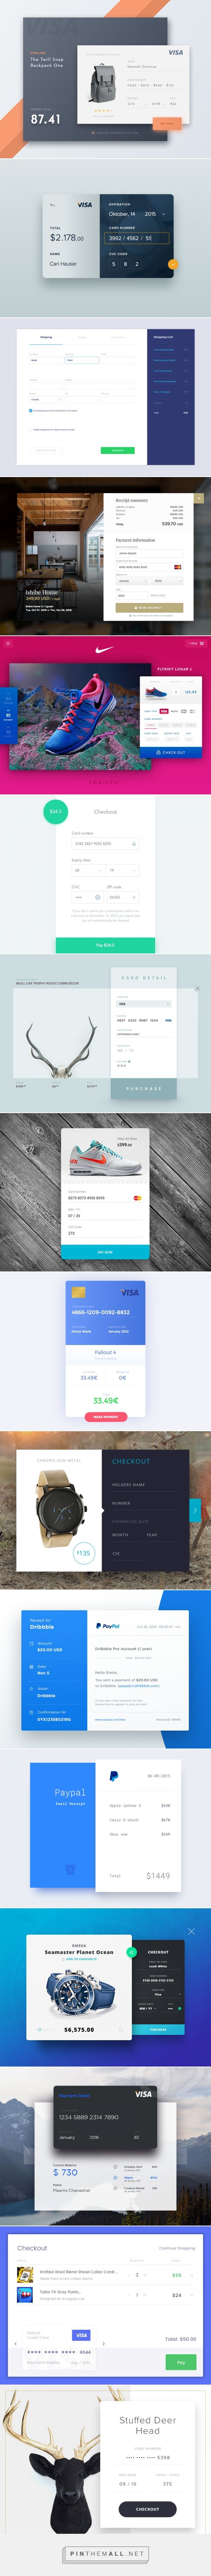 Checkout/Payment Pages - created via https://pinthemall.net